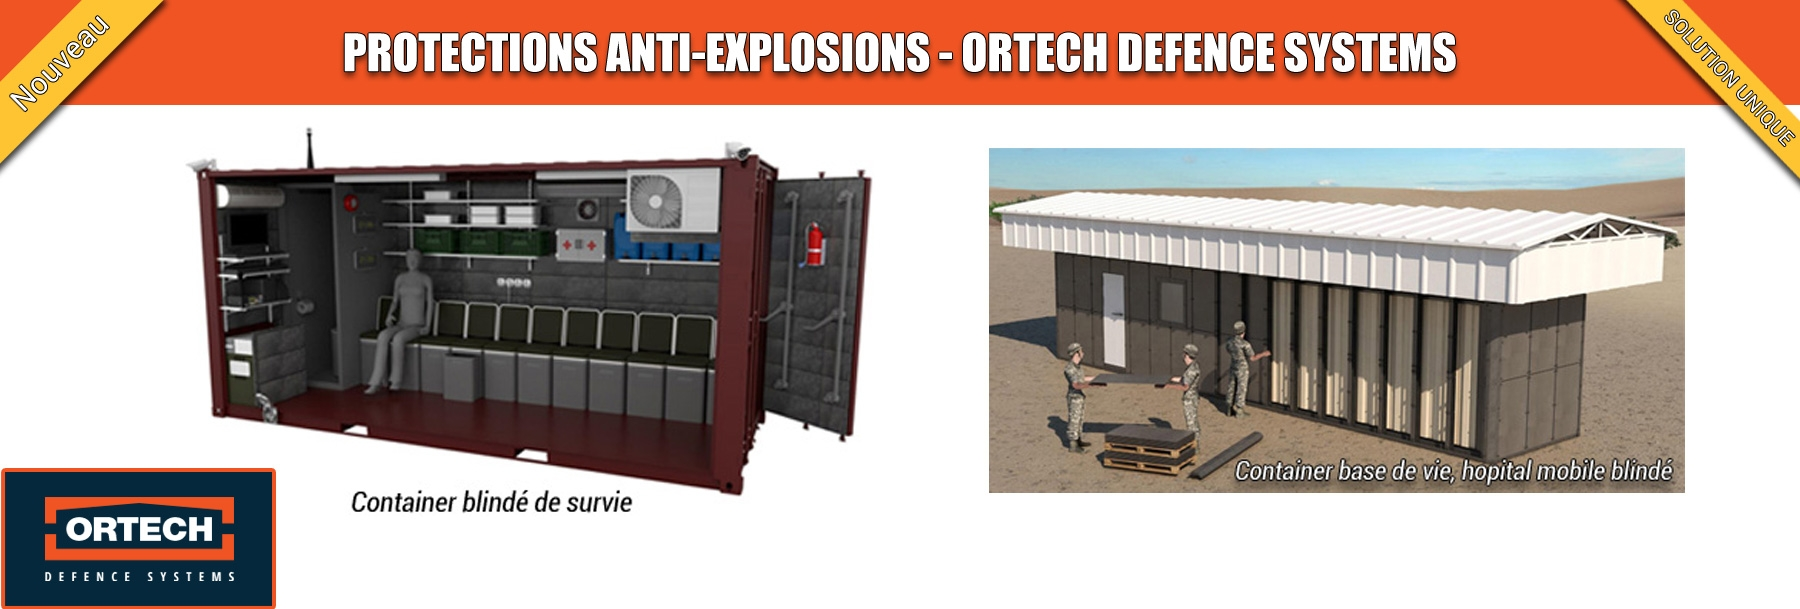 Ortech Defence Systems: protection anti-explosion